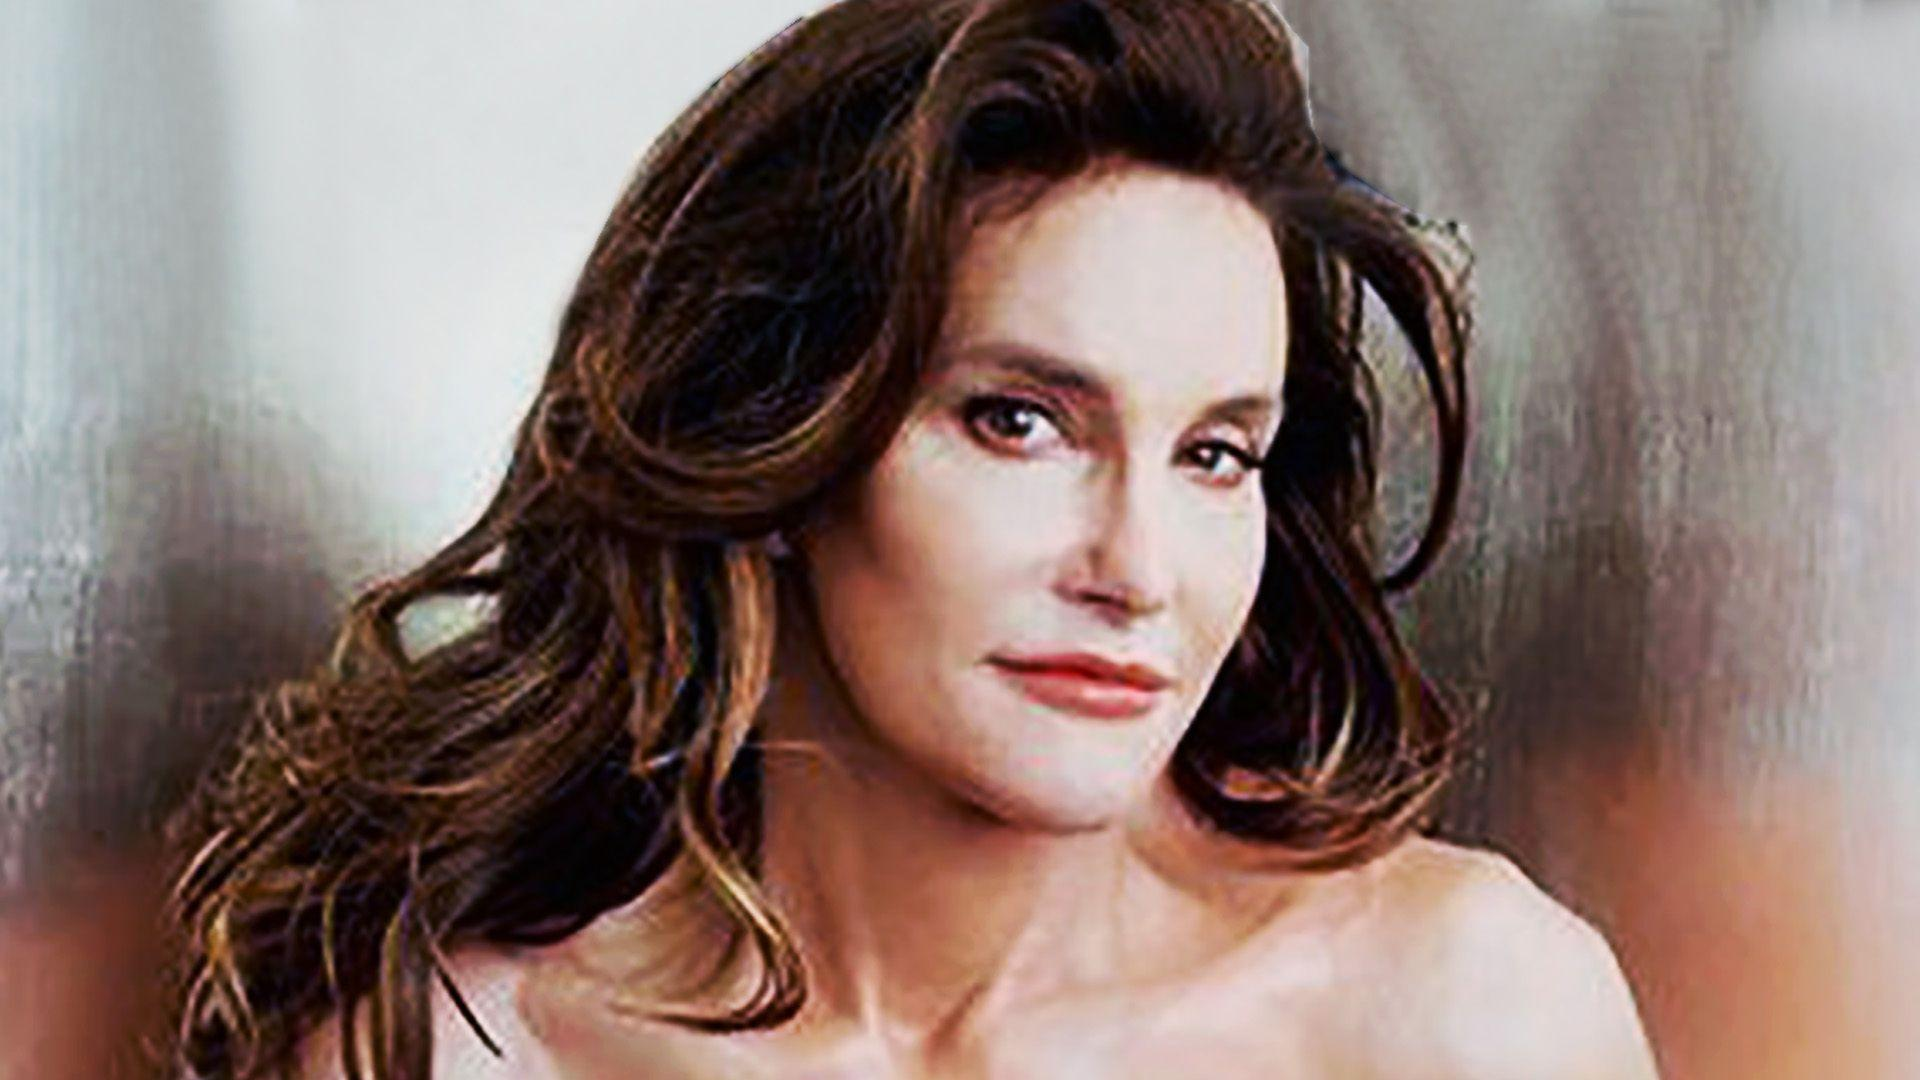 Caitlyn Jenner Wallpapers High Resolution and Quality Download